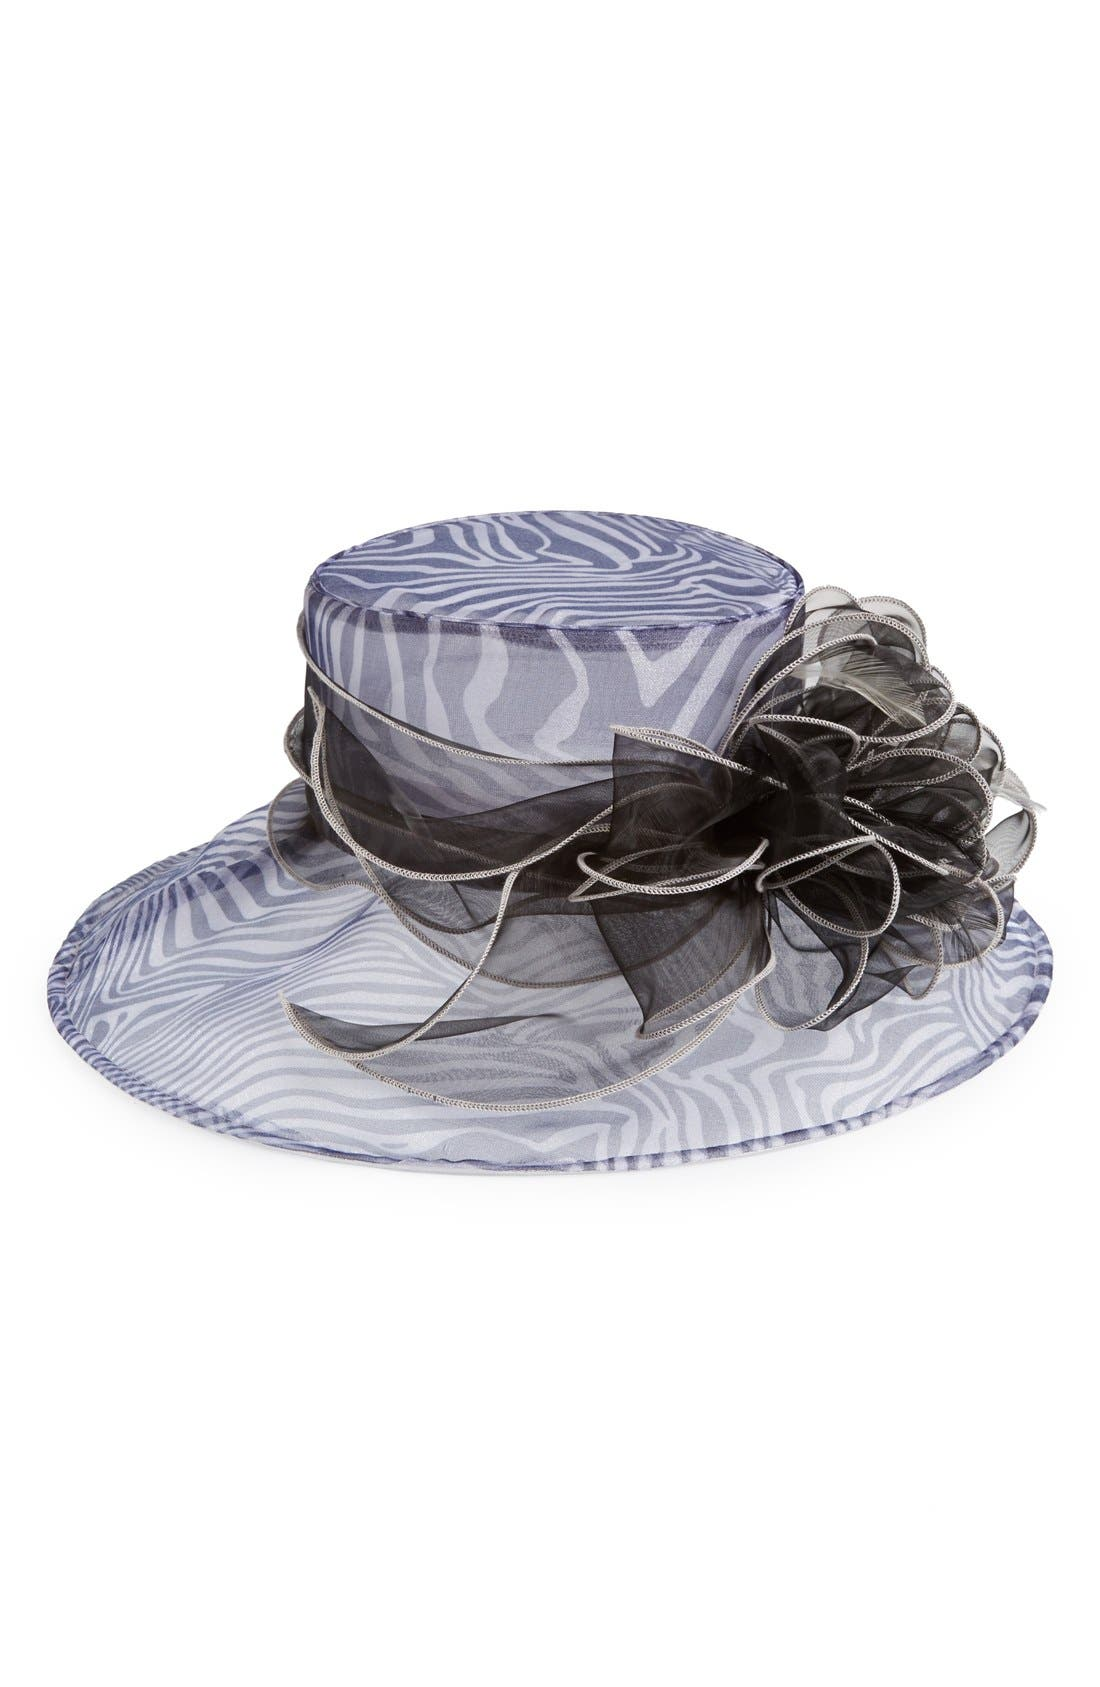 Alternate Image 1 Selected - August Hat 'Olympia' Organza Hat